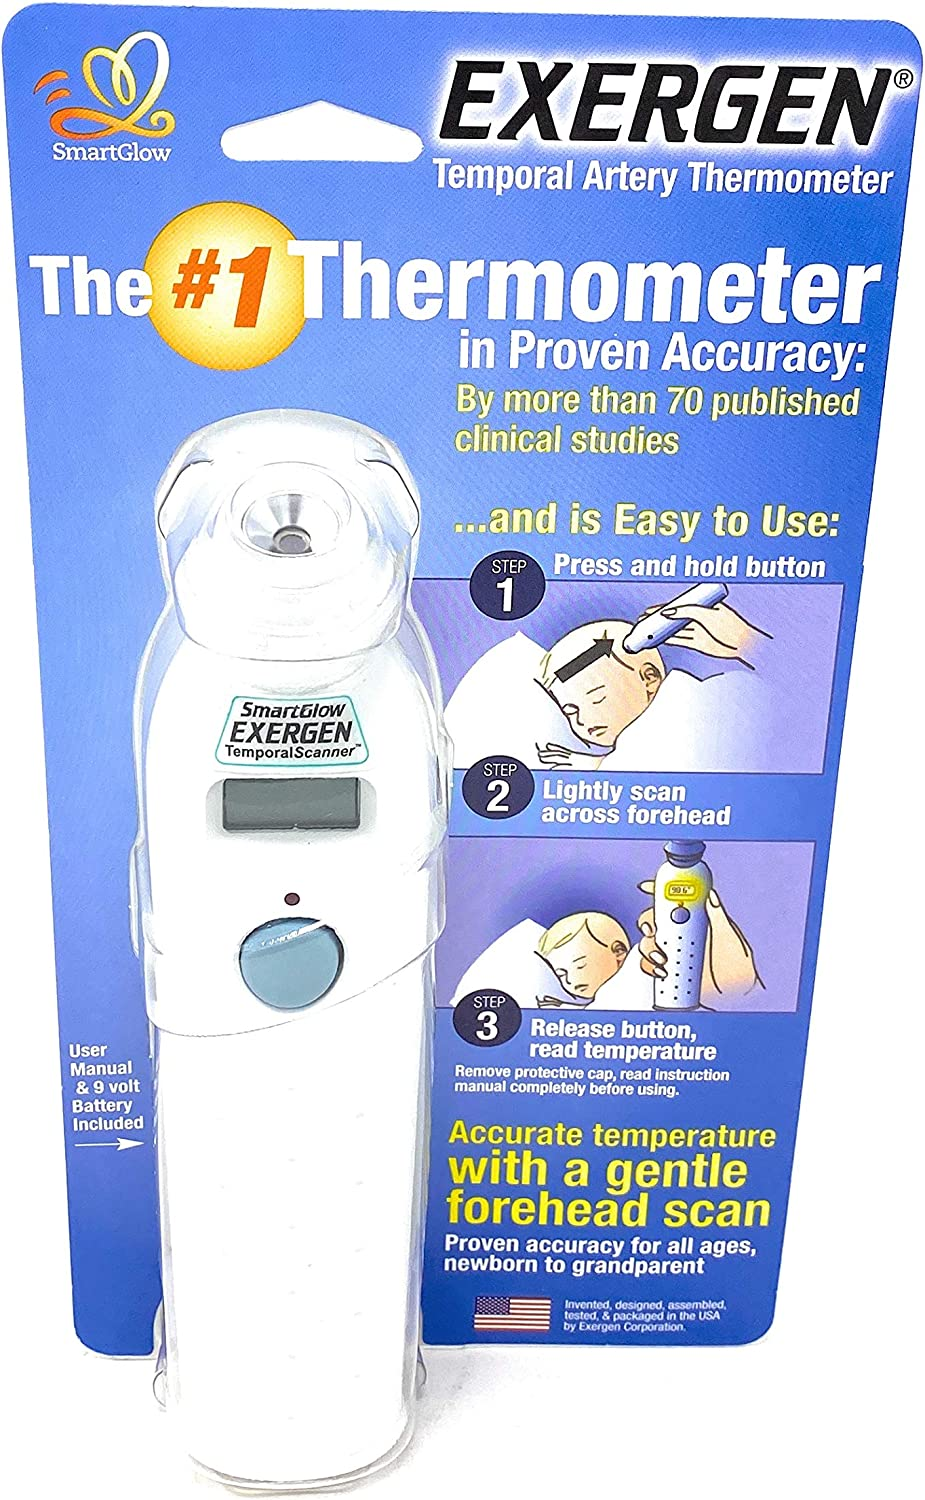 Exergen Temporal Artery Thermometer Model# TAT-2000C